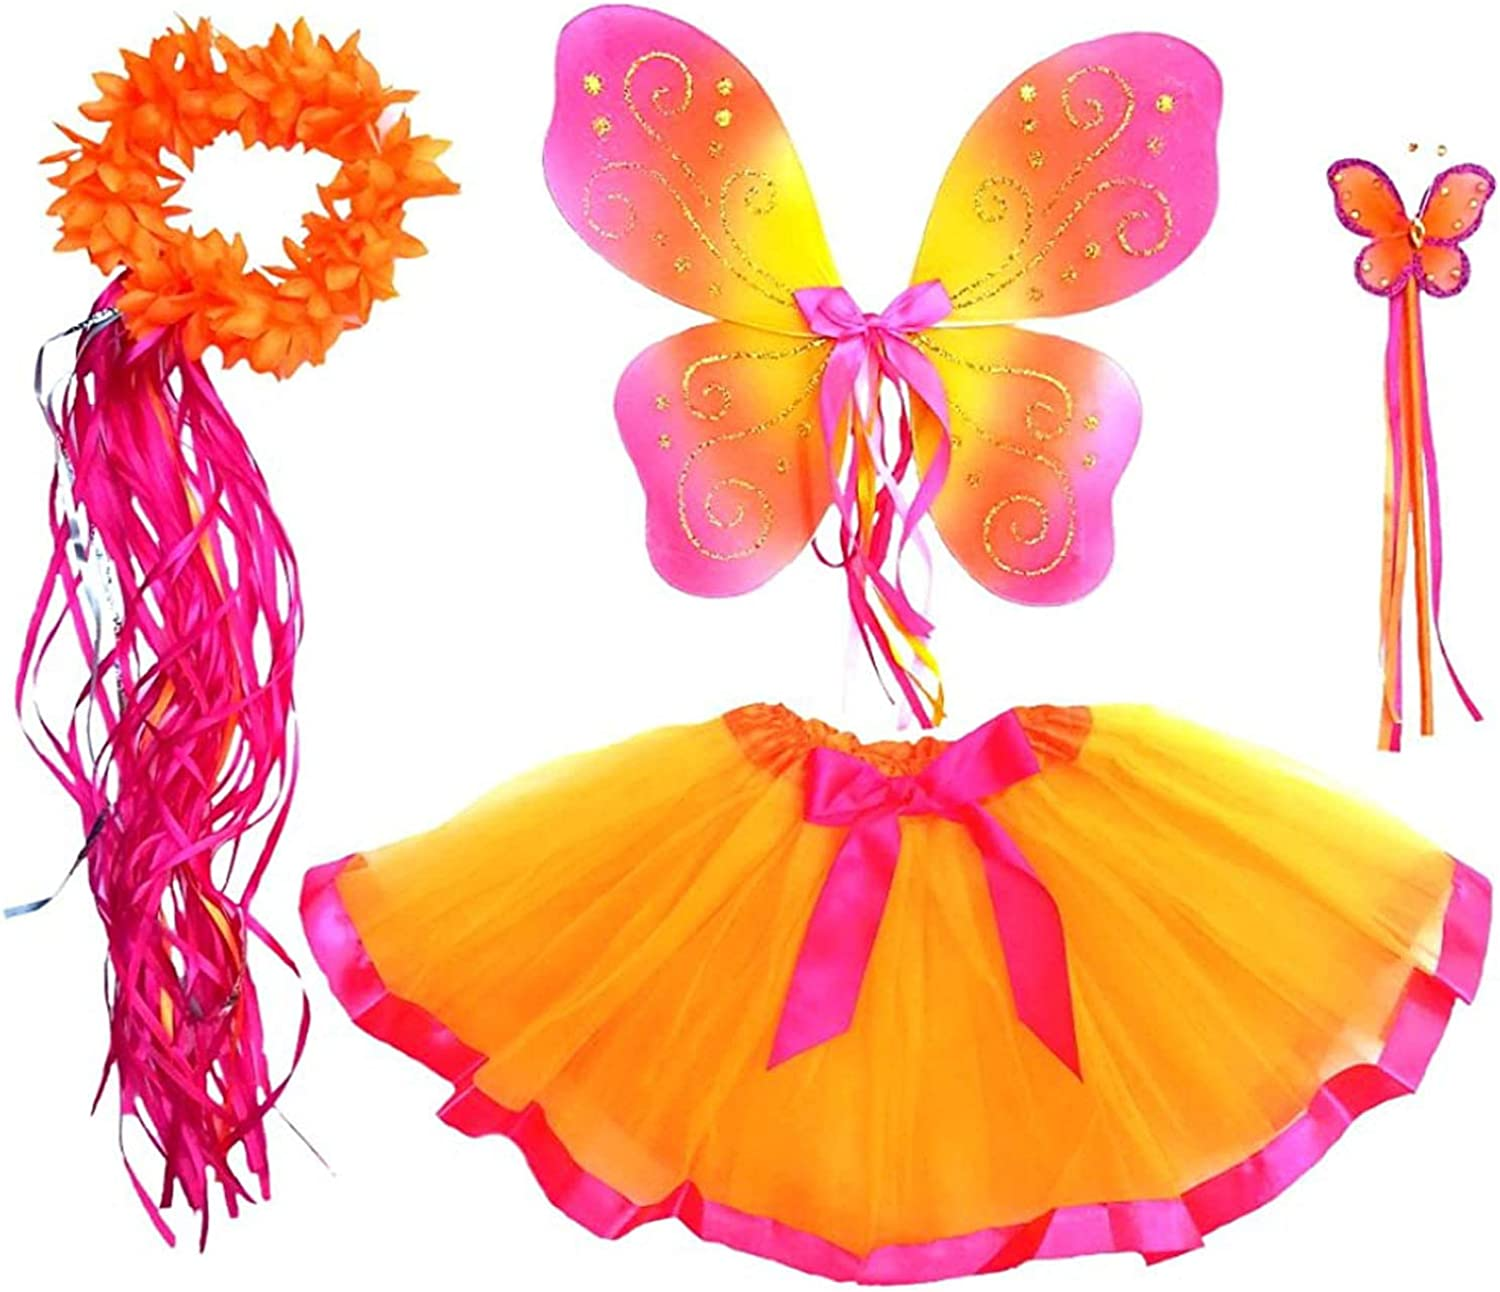 Enchantly Fairy Costume - Fairy Wings for Girls - Butterfly Costume for Girls - 4 Piece Unique Design Set